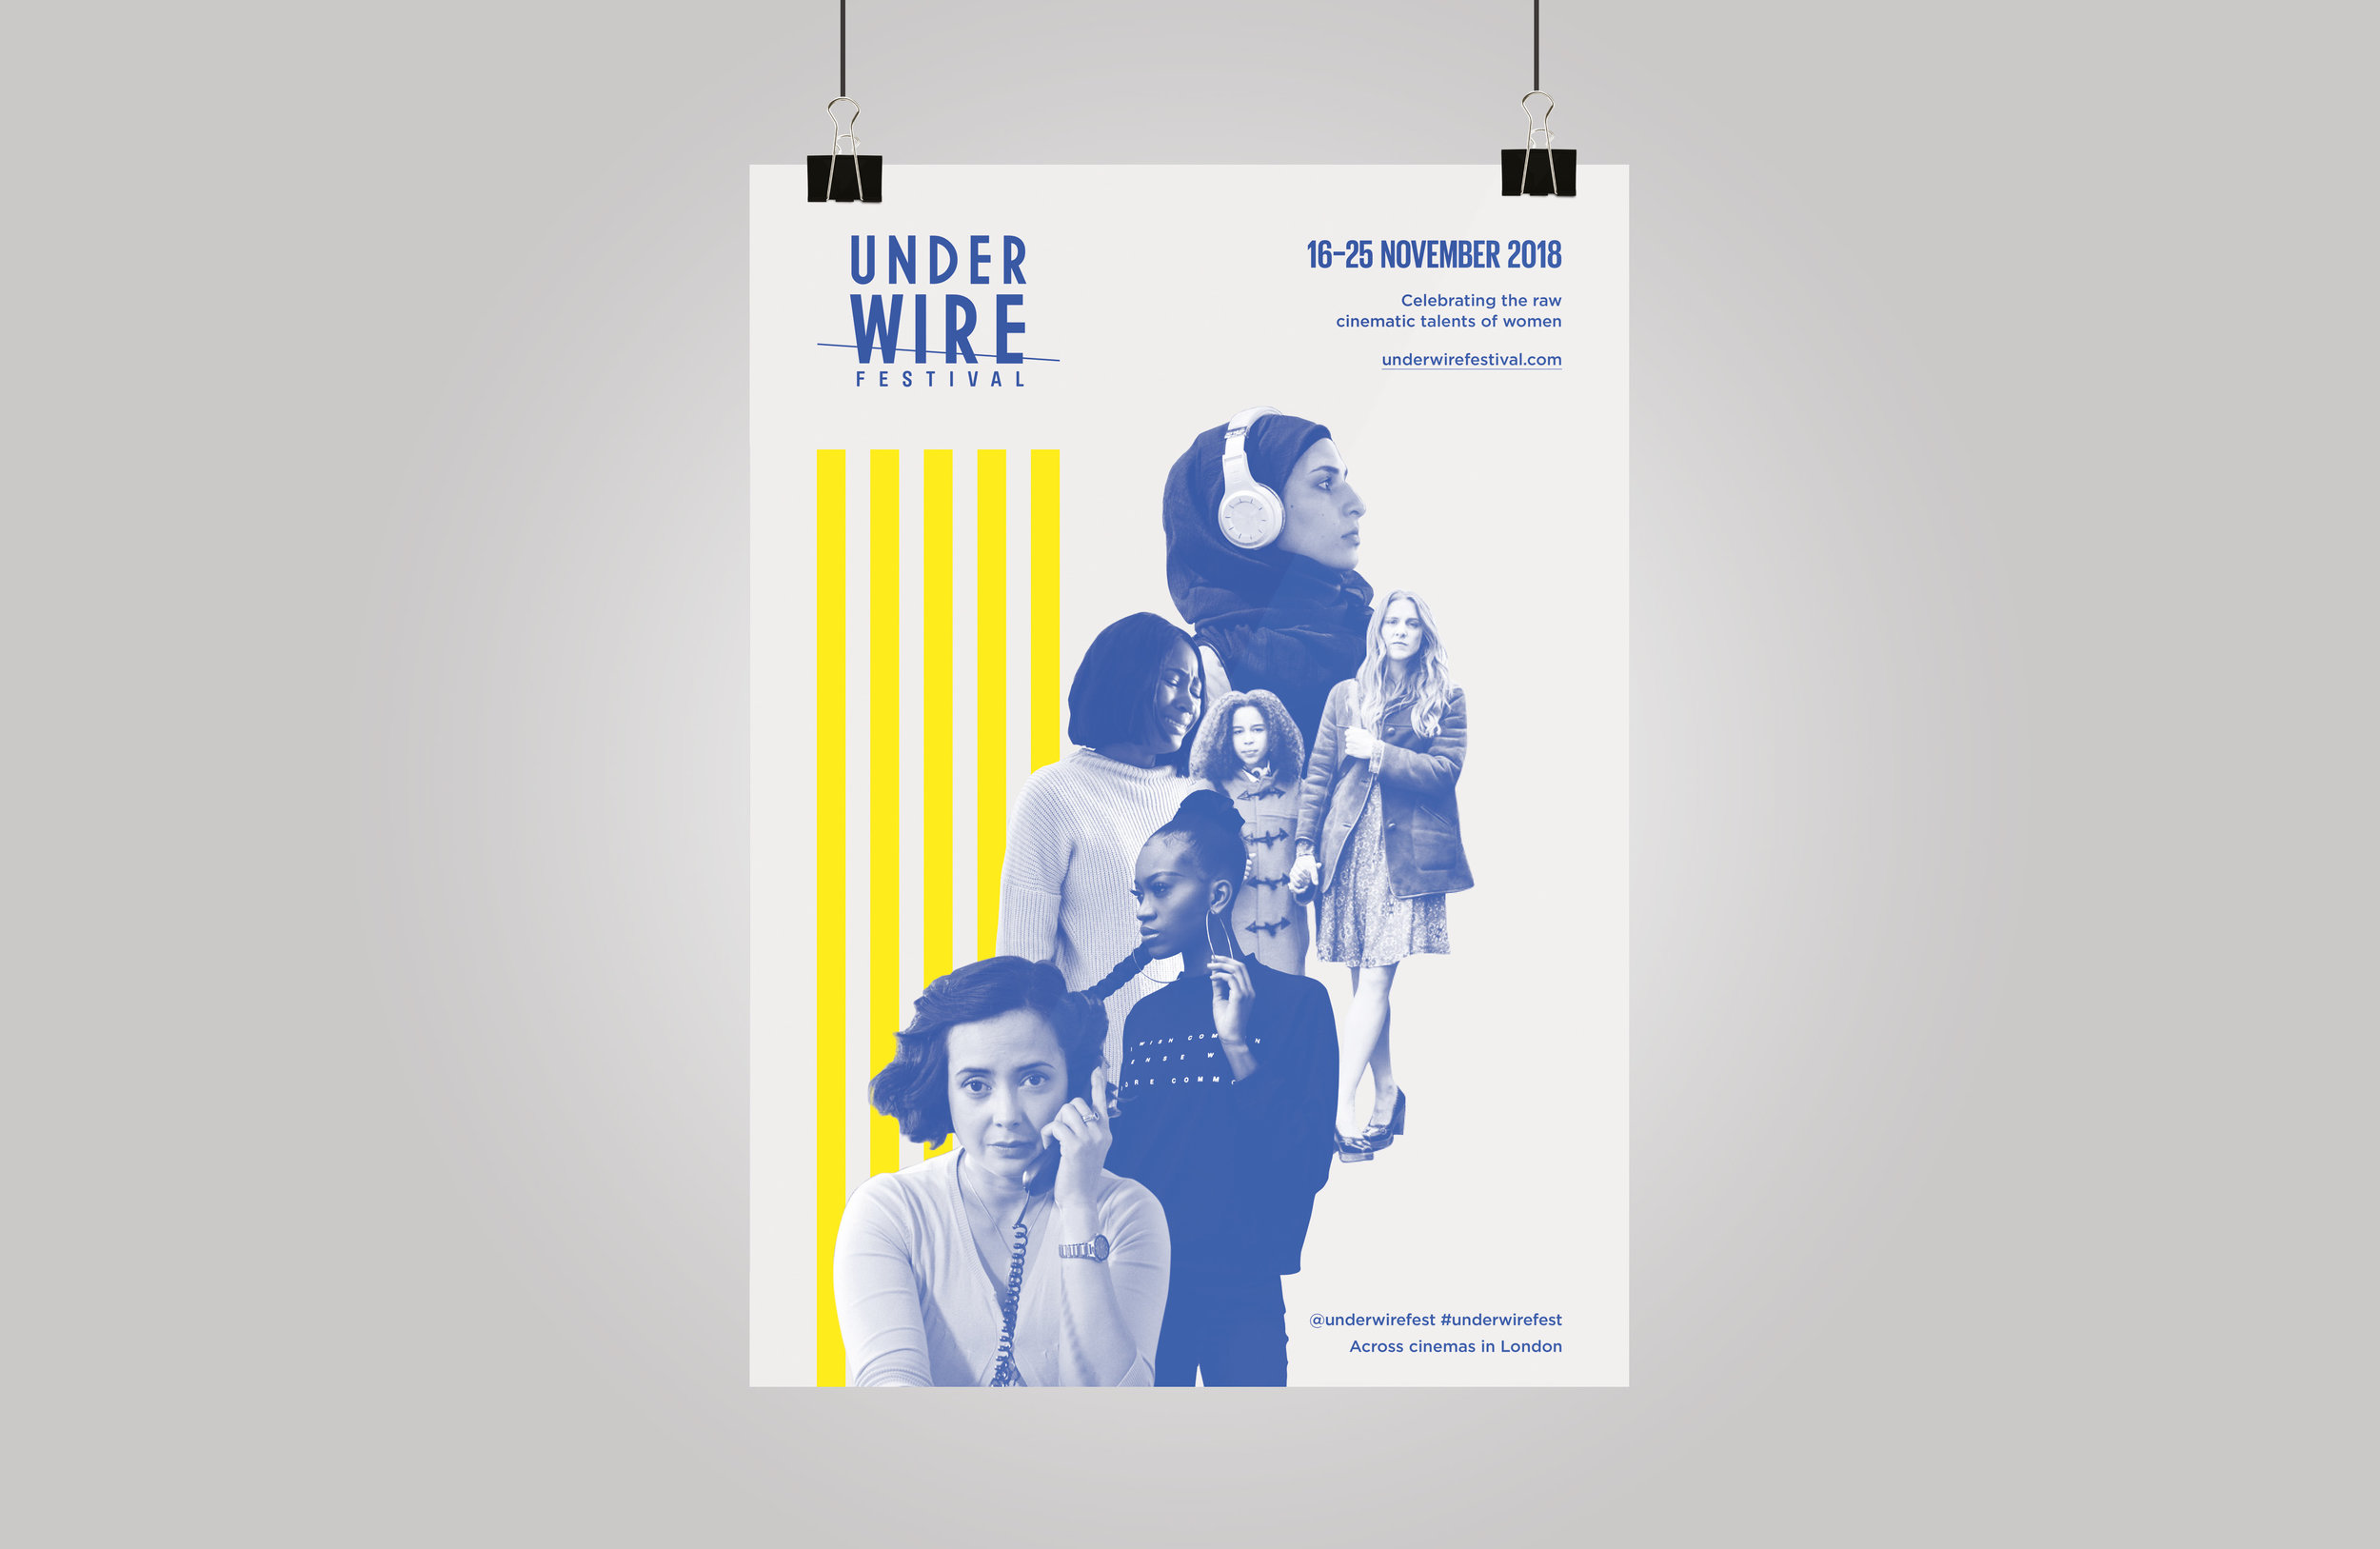 Underwire_Poster_Cropped_Mockup.jpg